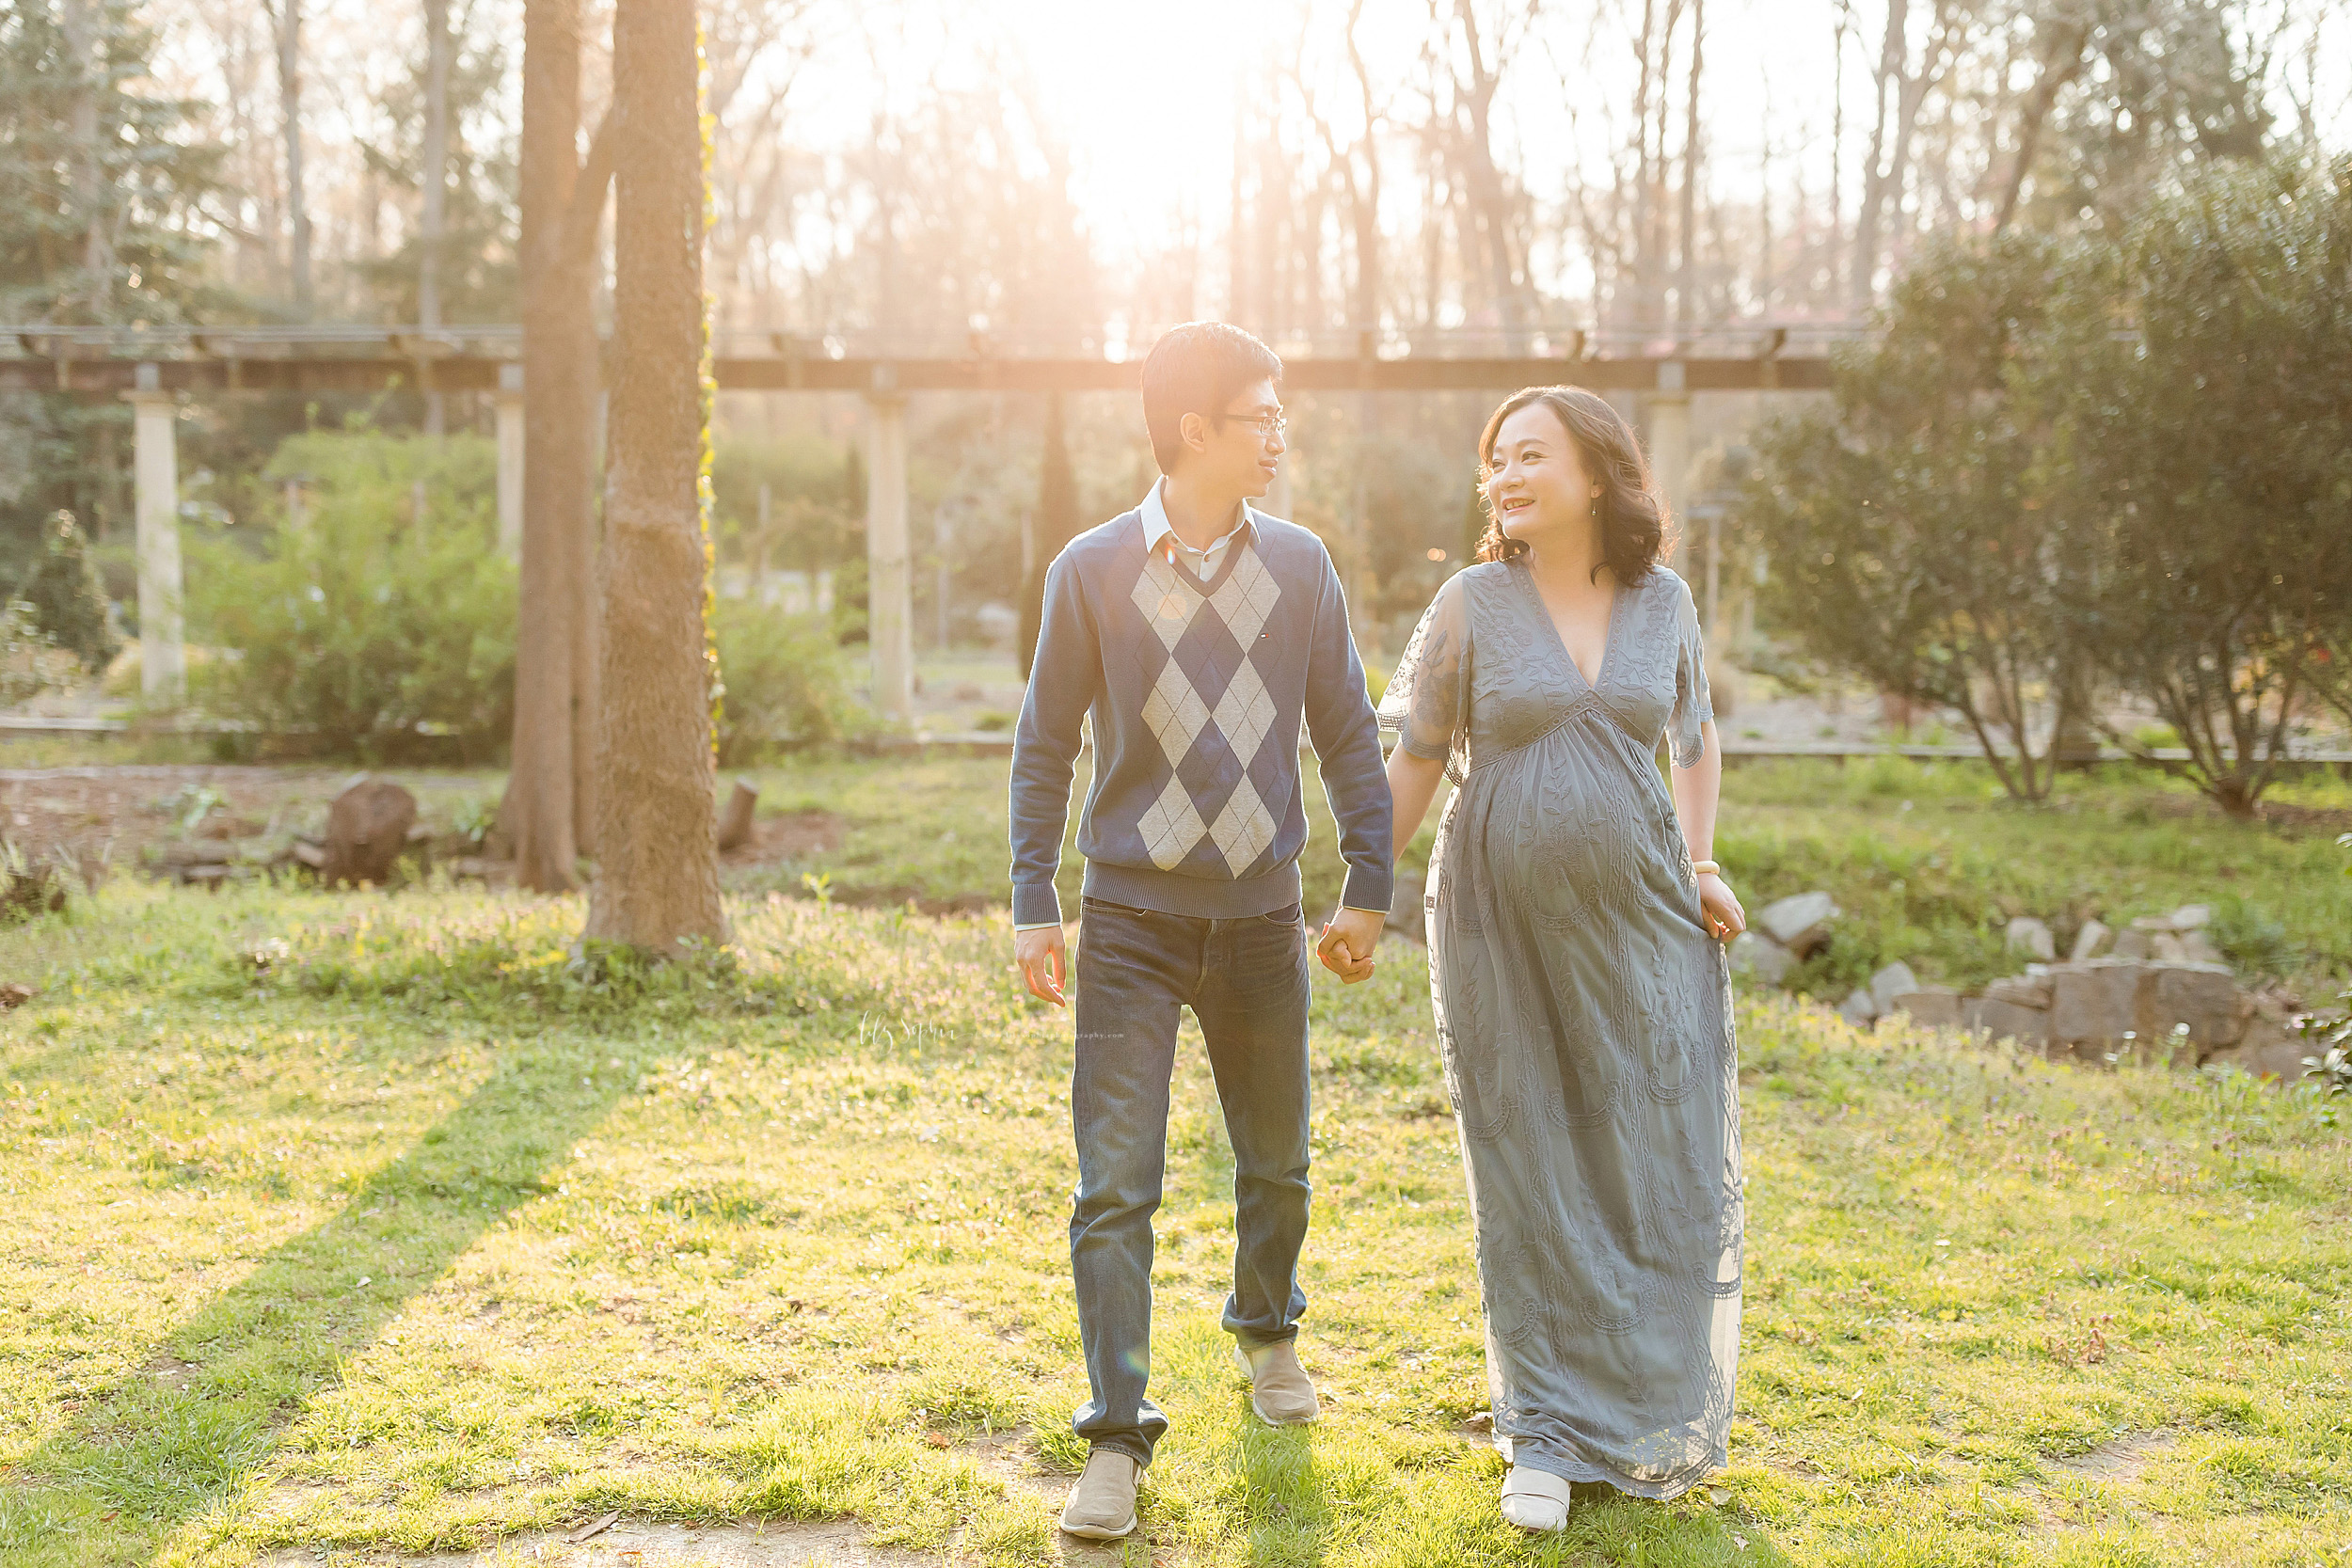 Maternity photo of an Asian couple walking in a garden at sunset in Atlanta. The husband is wearing a light blue shirt under a wedgewood blue pull over sweater with an argyle print on the front of the sweater and blue jeans. His wife is wearing a short sleeve V-necked wedgewood blue full-length gown. They are holding one another's hand as they look at each other and walk in the garden.  The wife holds her dress with her left hand as the sun sets in the background.